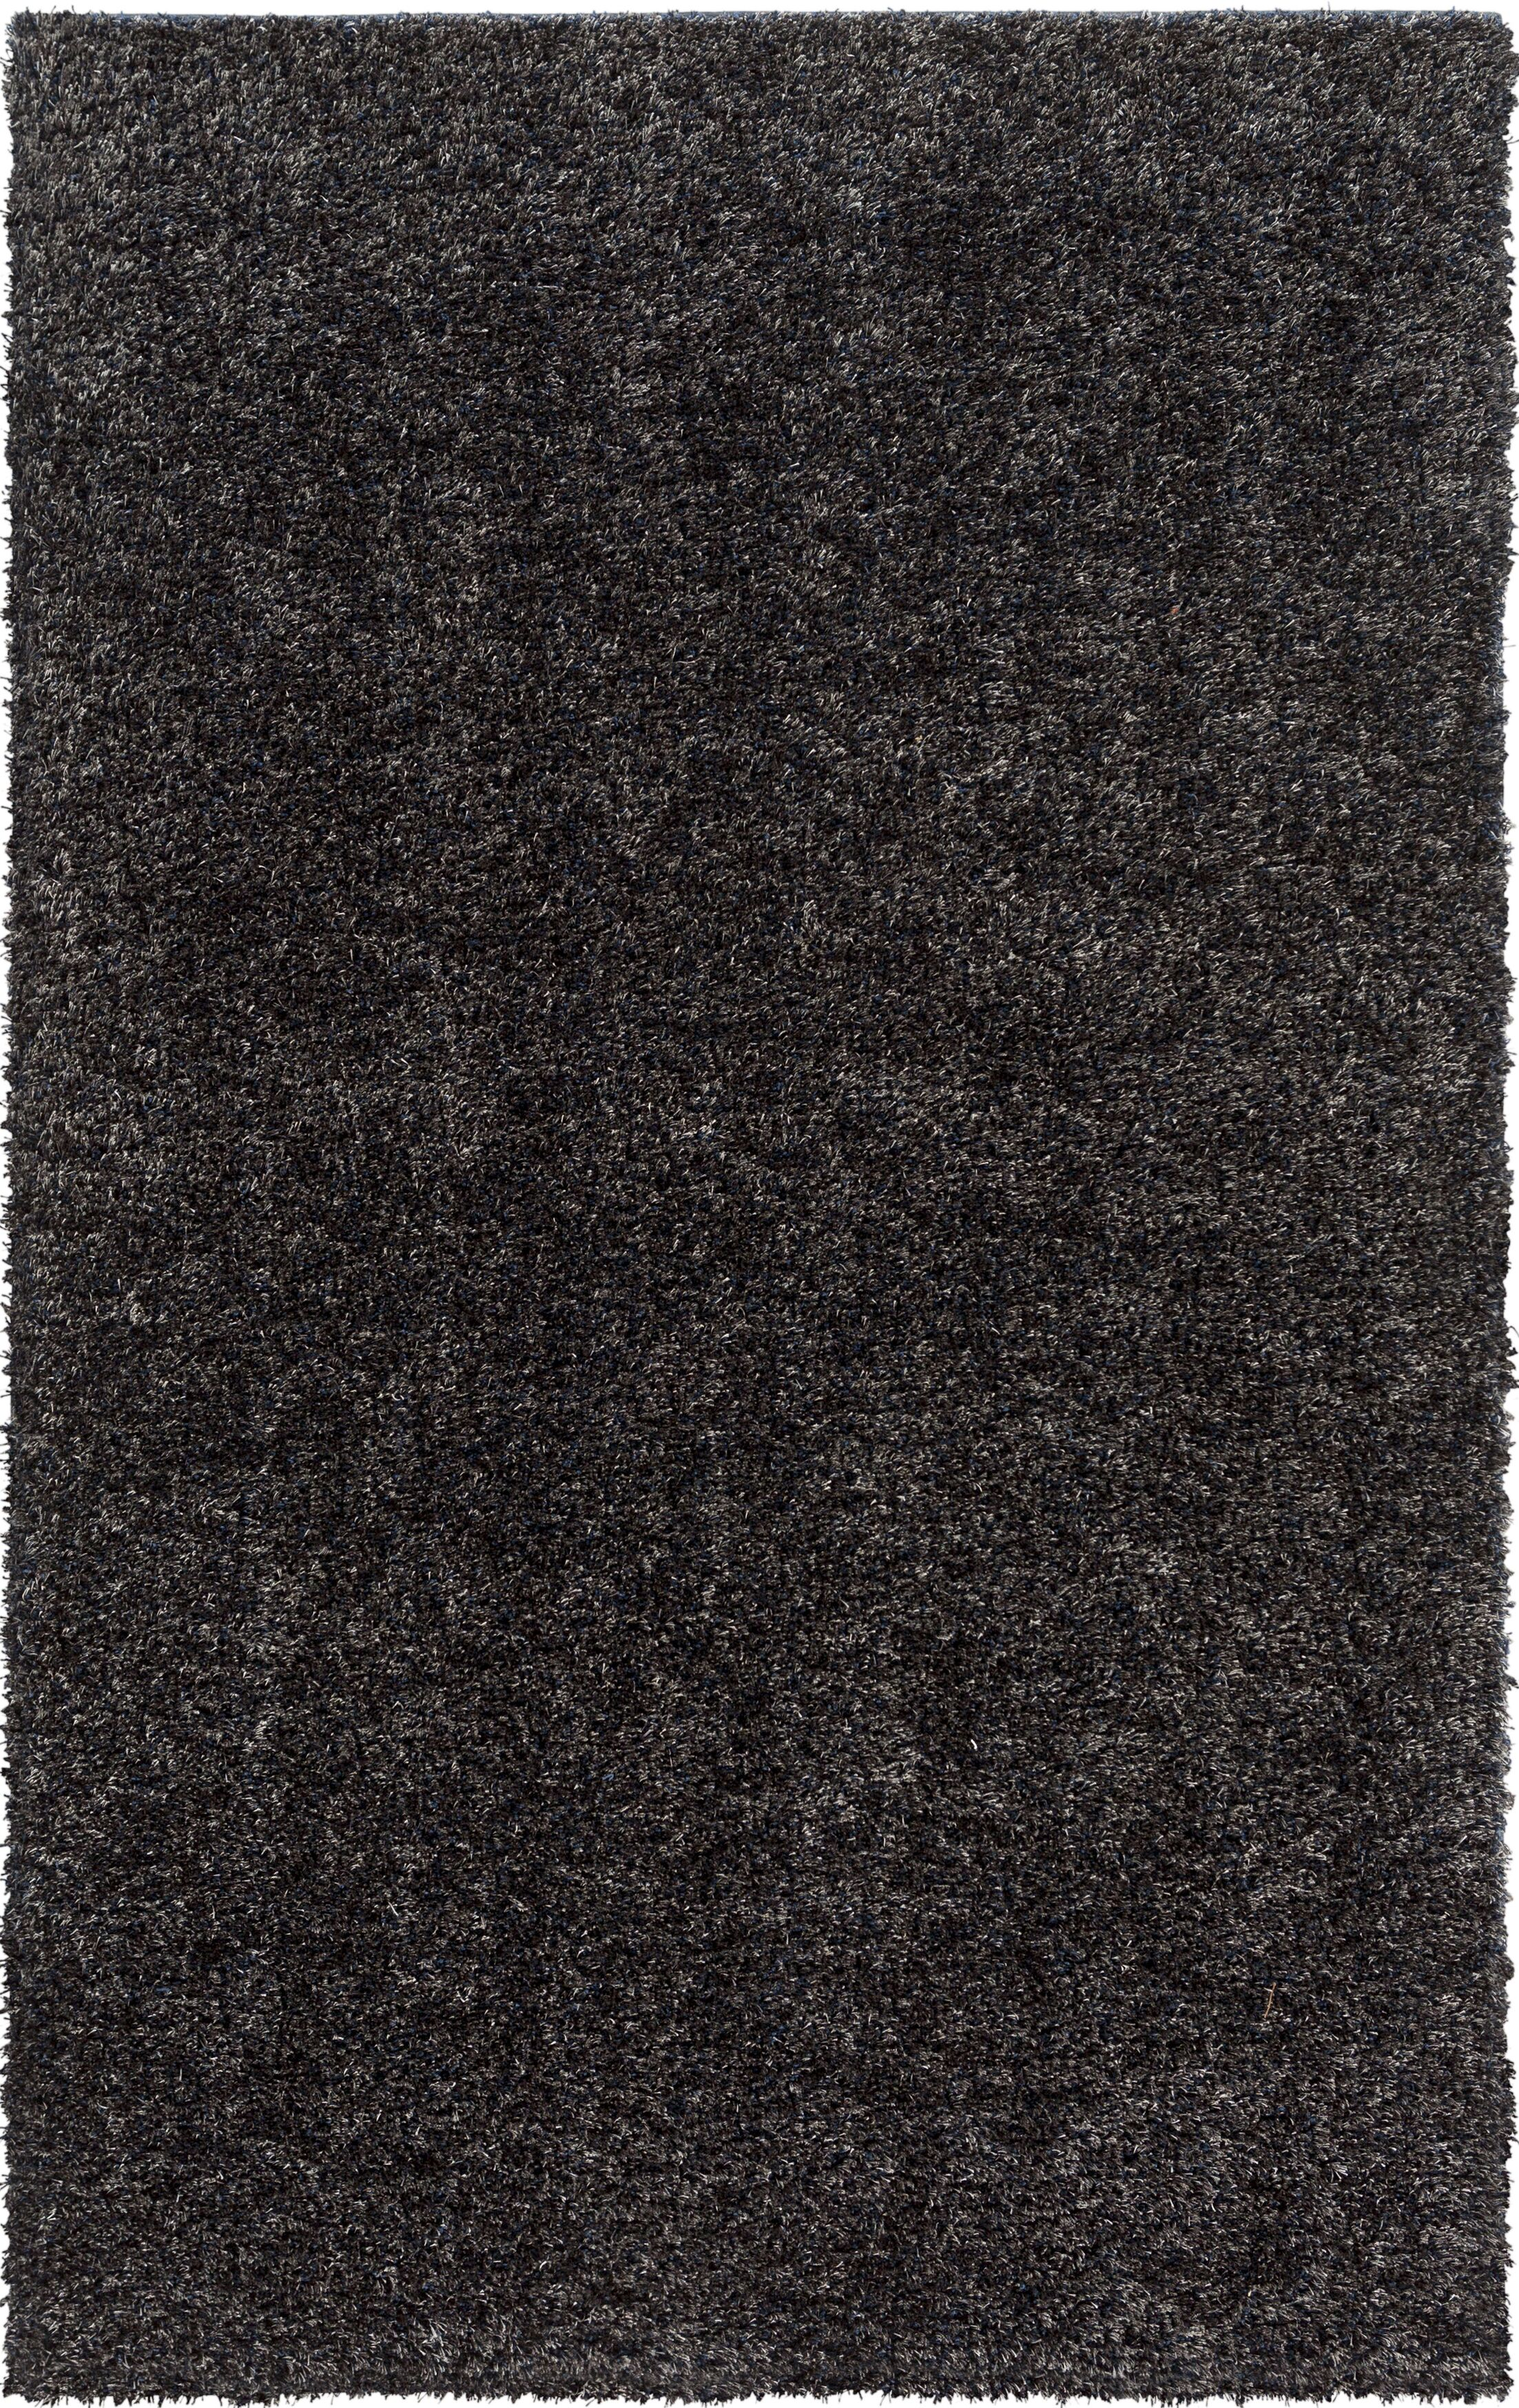 Gaius Gray Area Rug Rug Size: Rectangle 3' x 5'